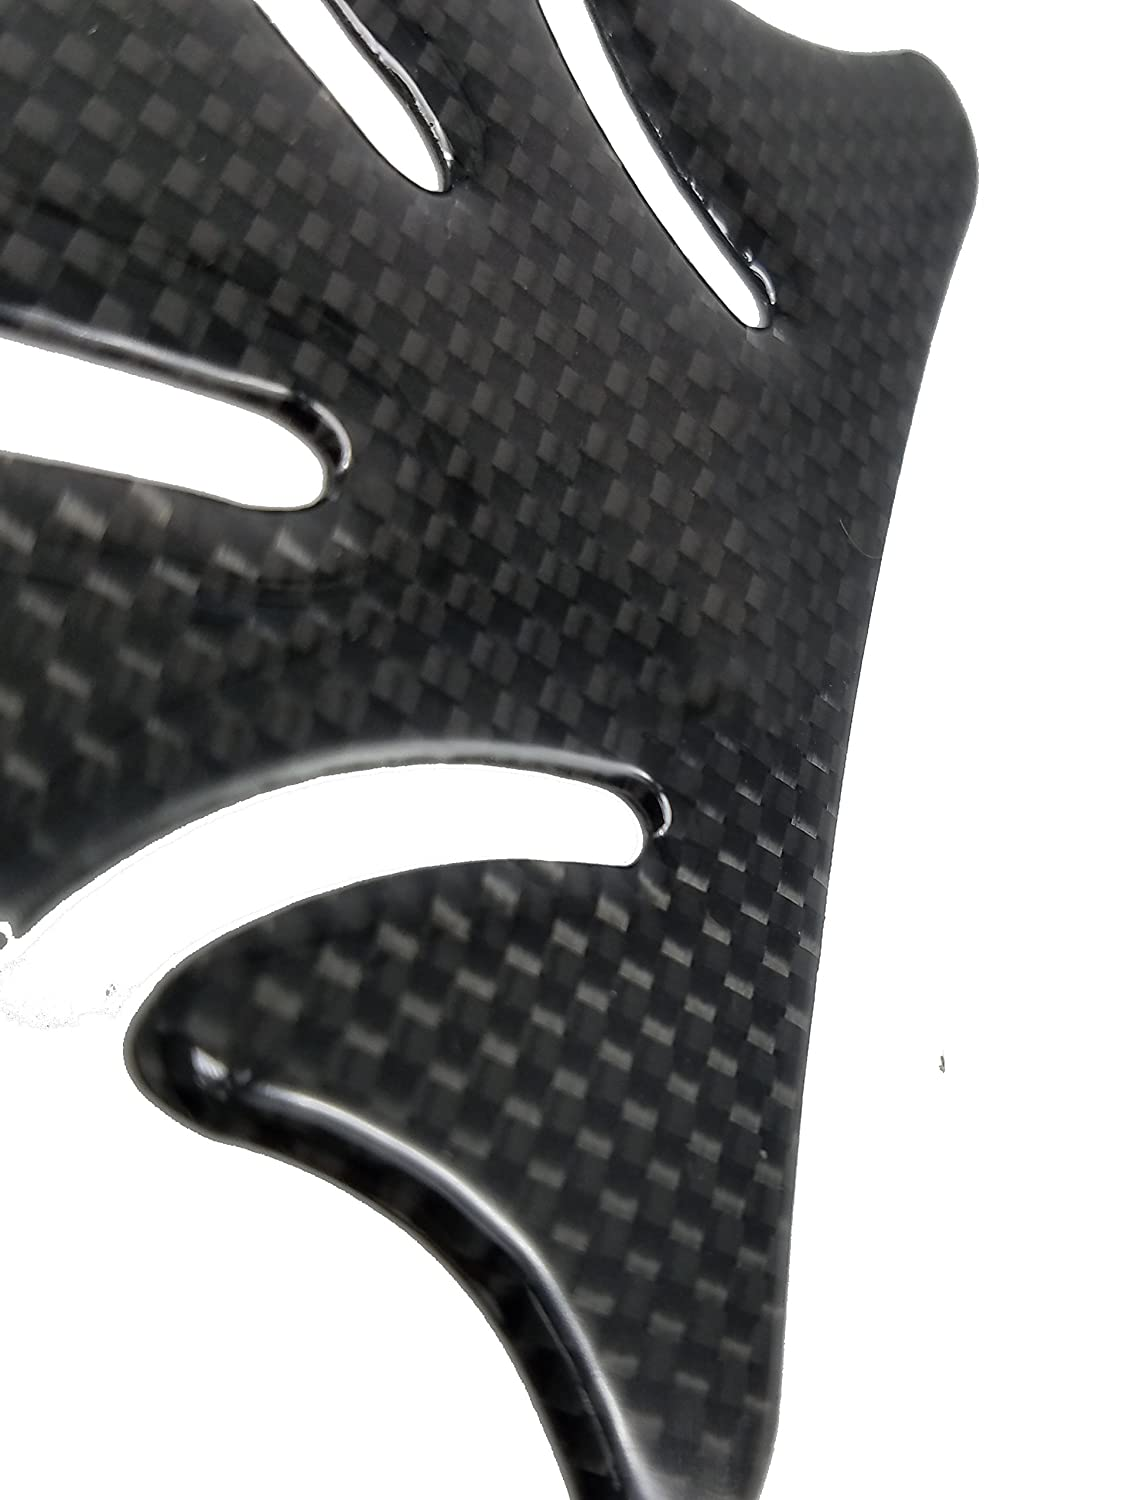 5 Layer Real Carbon Fiber 3D Silver Sticker Vinyl Decal Emblem Protection Gas Tank Pad For Suzuki SV650 All Models